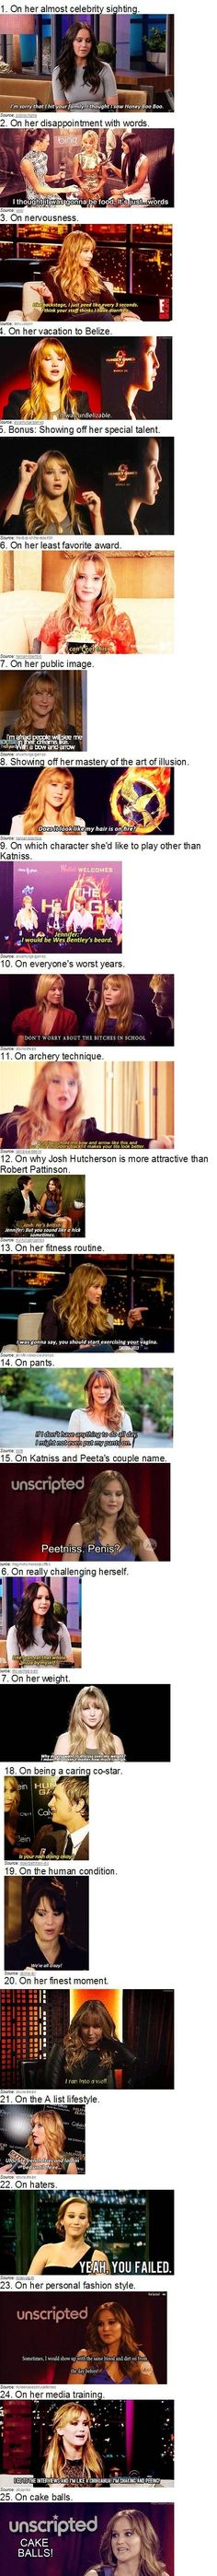 This is why we love her. Jennifer Lawrence is hilarious. I just really want to be her friend.